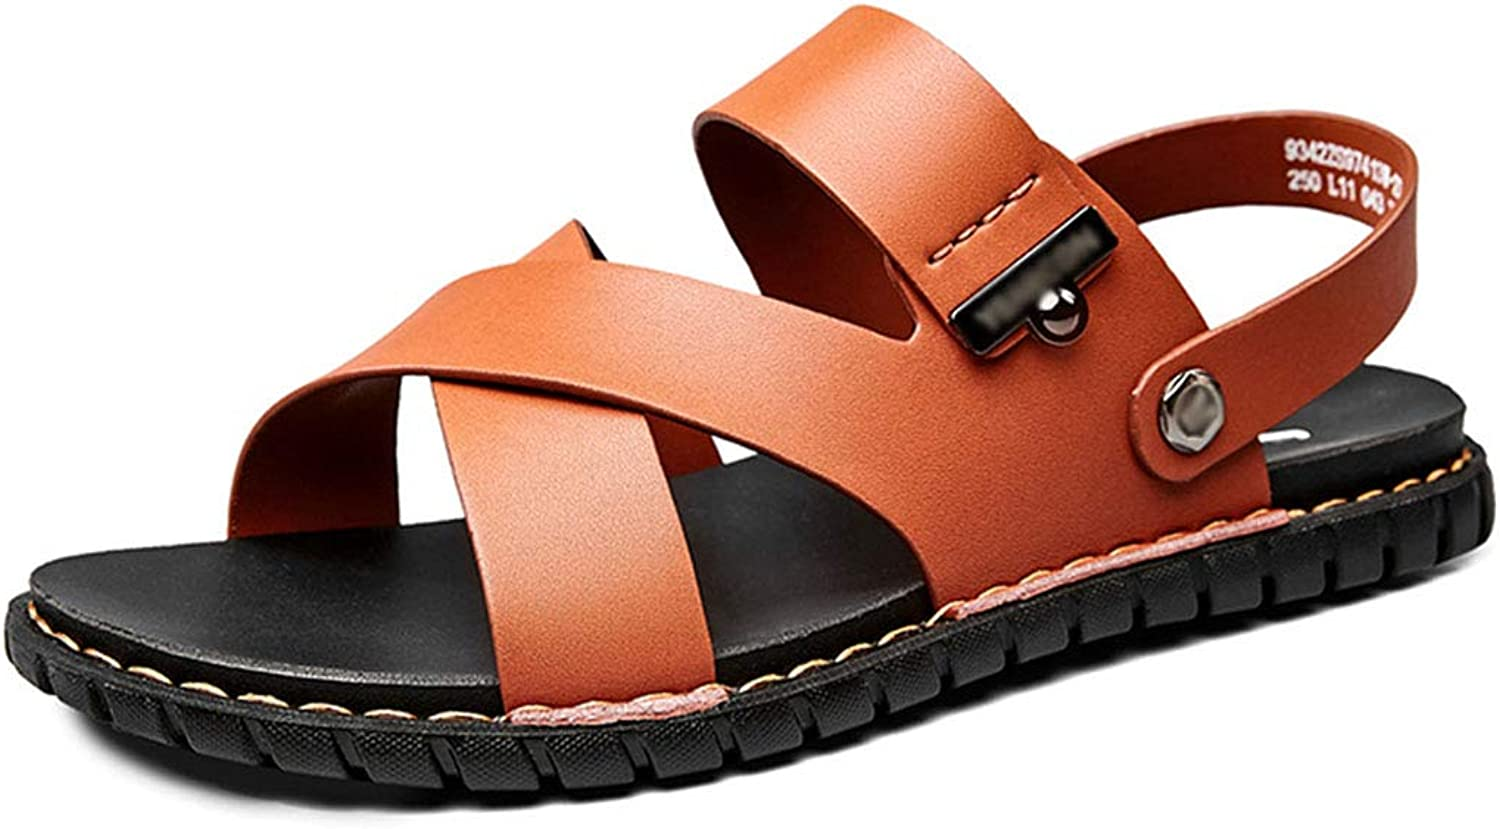 Men Beach Slippers Gladiator Breathable Outdoor Flats Slip-on Summer shoes Water Casual Slip-on Sandals,Brown,39